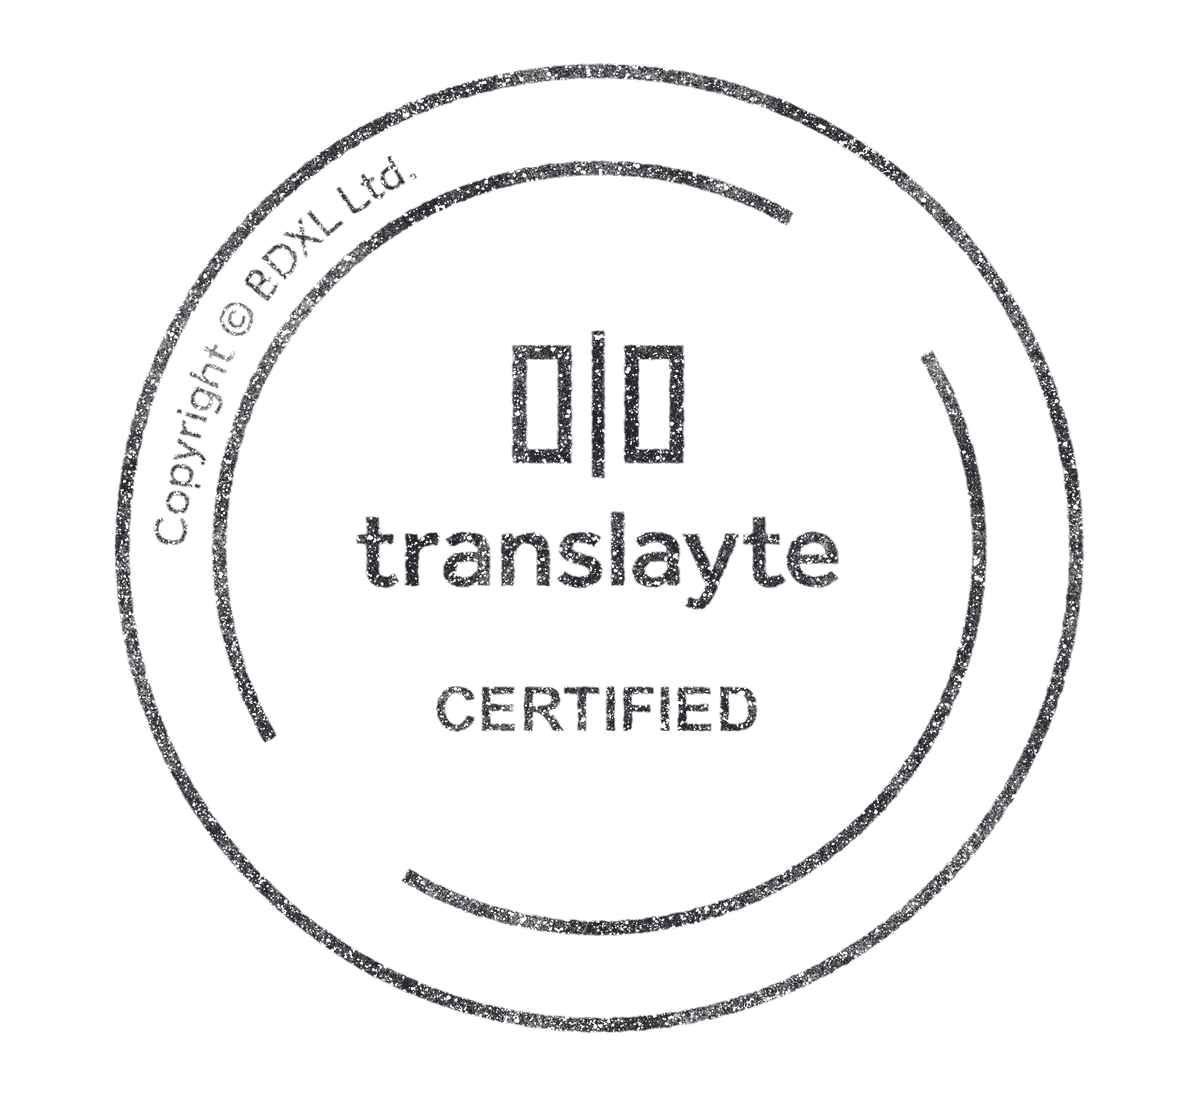 Translayte Certification Template